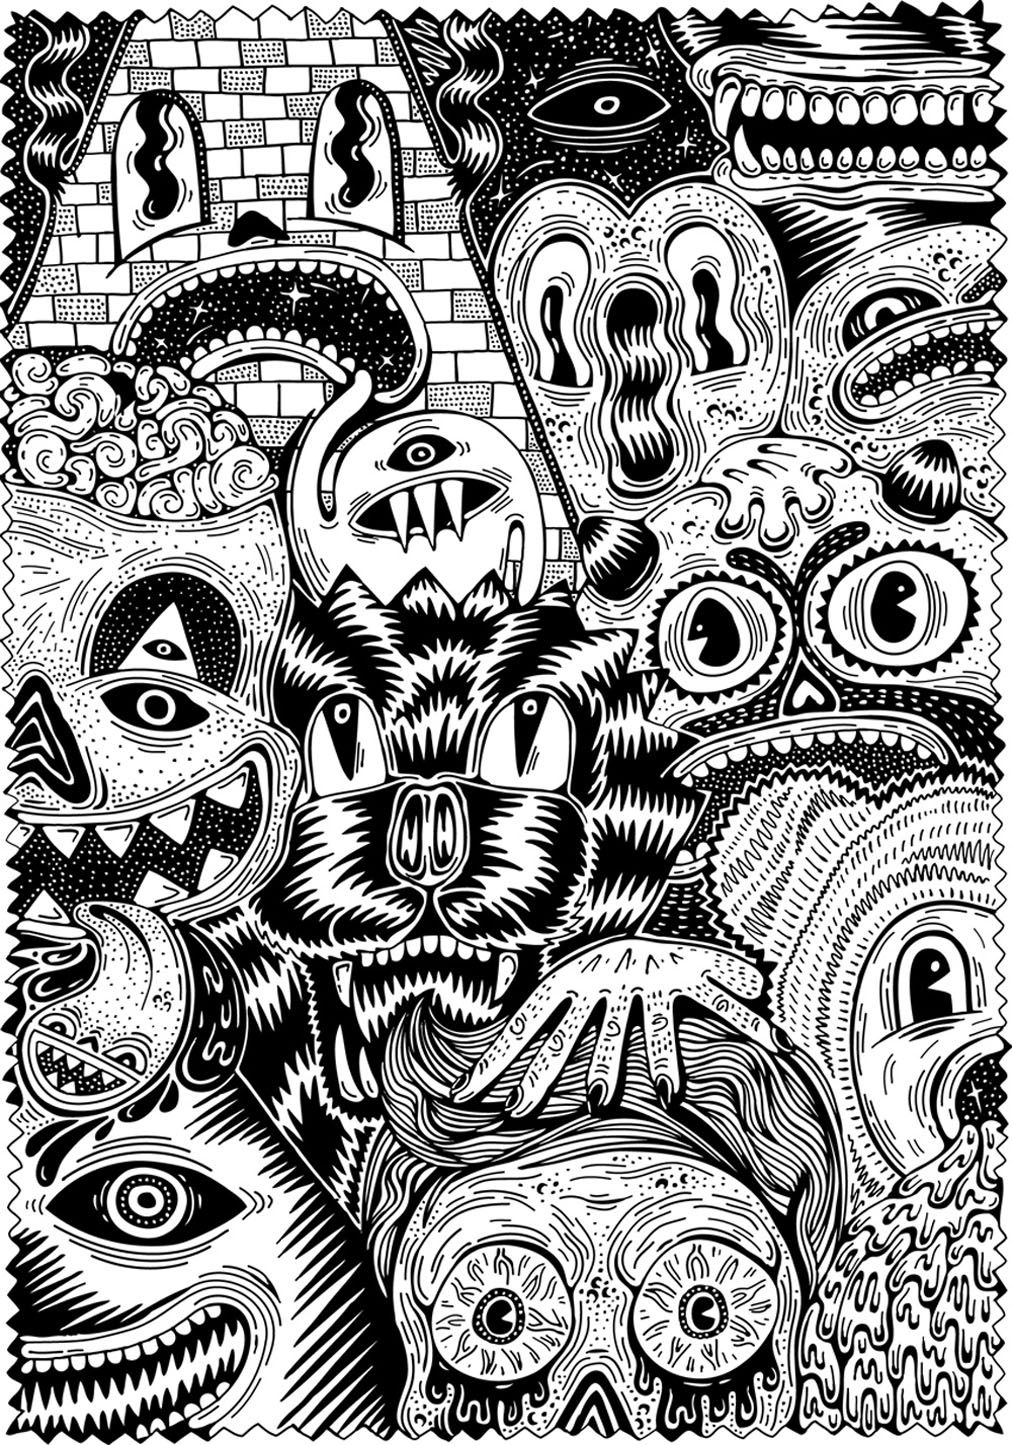 Free Coloring Page Coloring For Adult 7 Warning Scary Coloring